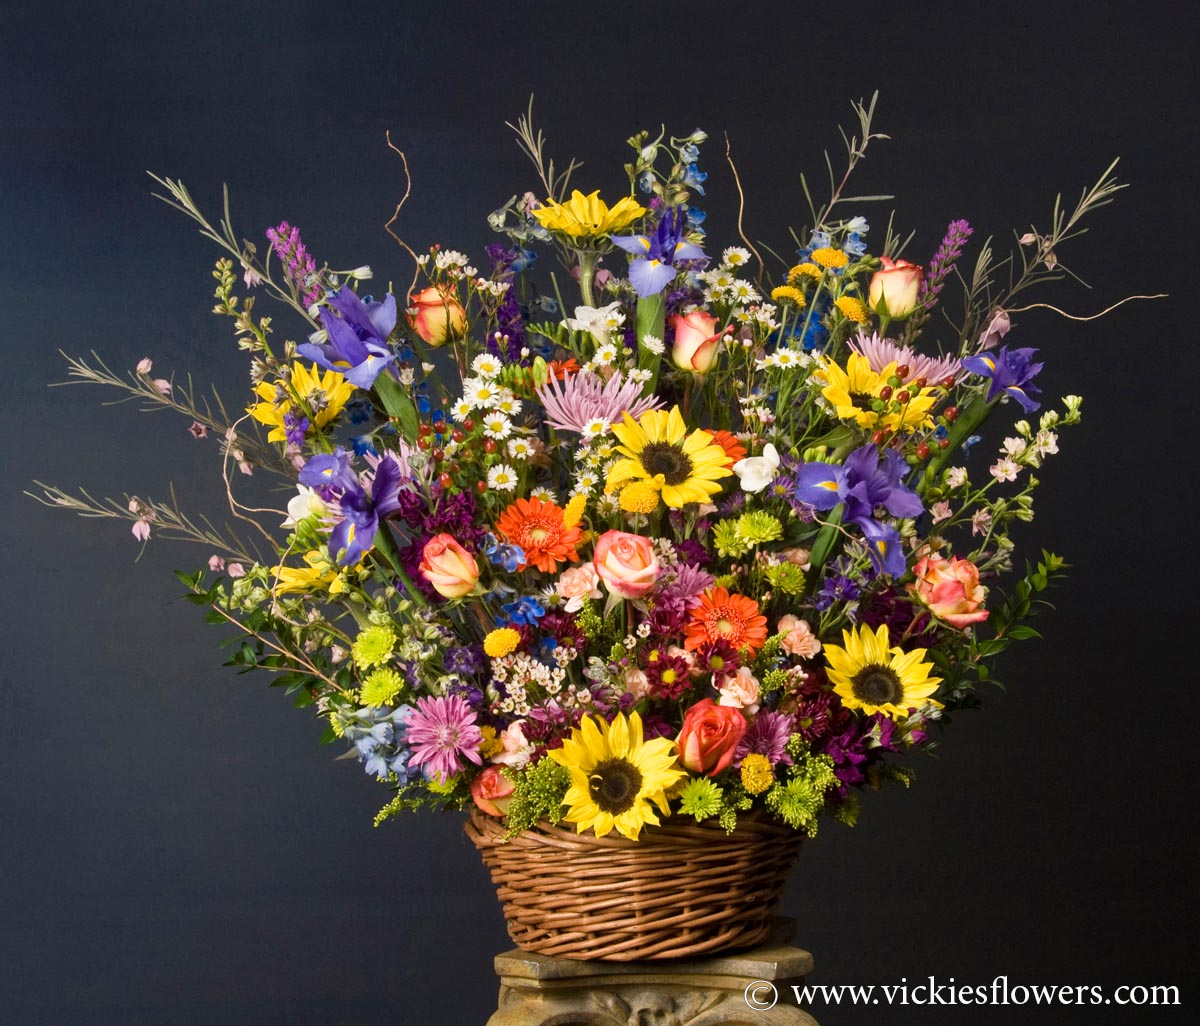 Sympathy flowers and plants vickies flowers brighton co florist funeral sympathy flowers 017 295 large basket 300 plus tax and delivery large basket of mixed wild flowers including blue iris yellow sunflowers izmirmasajfo Choice Image